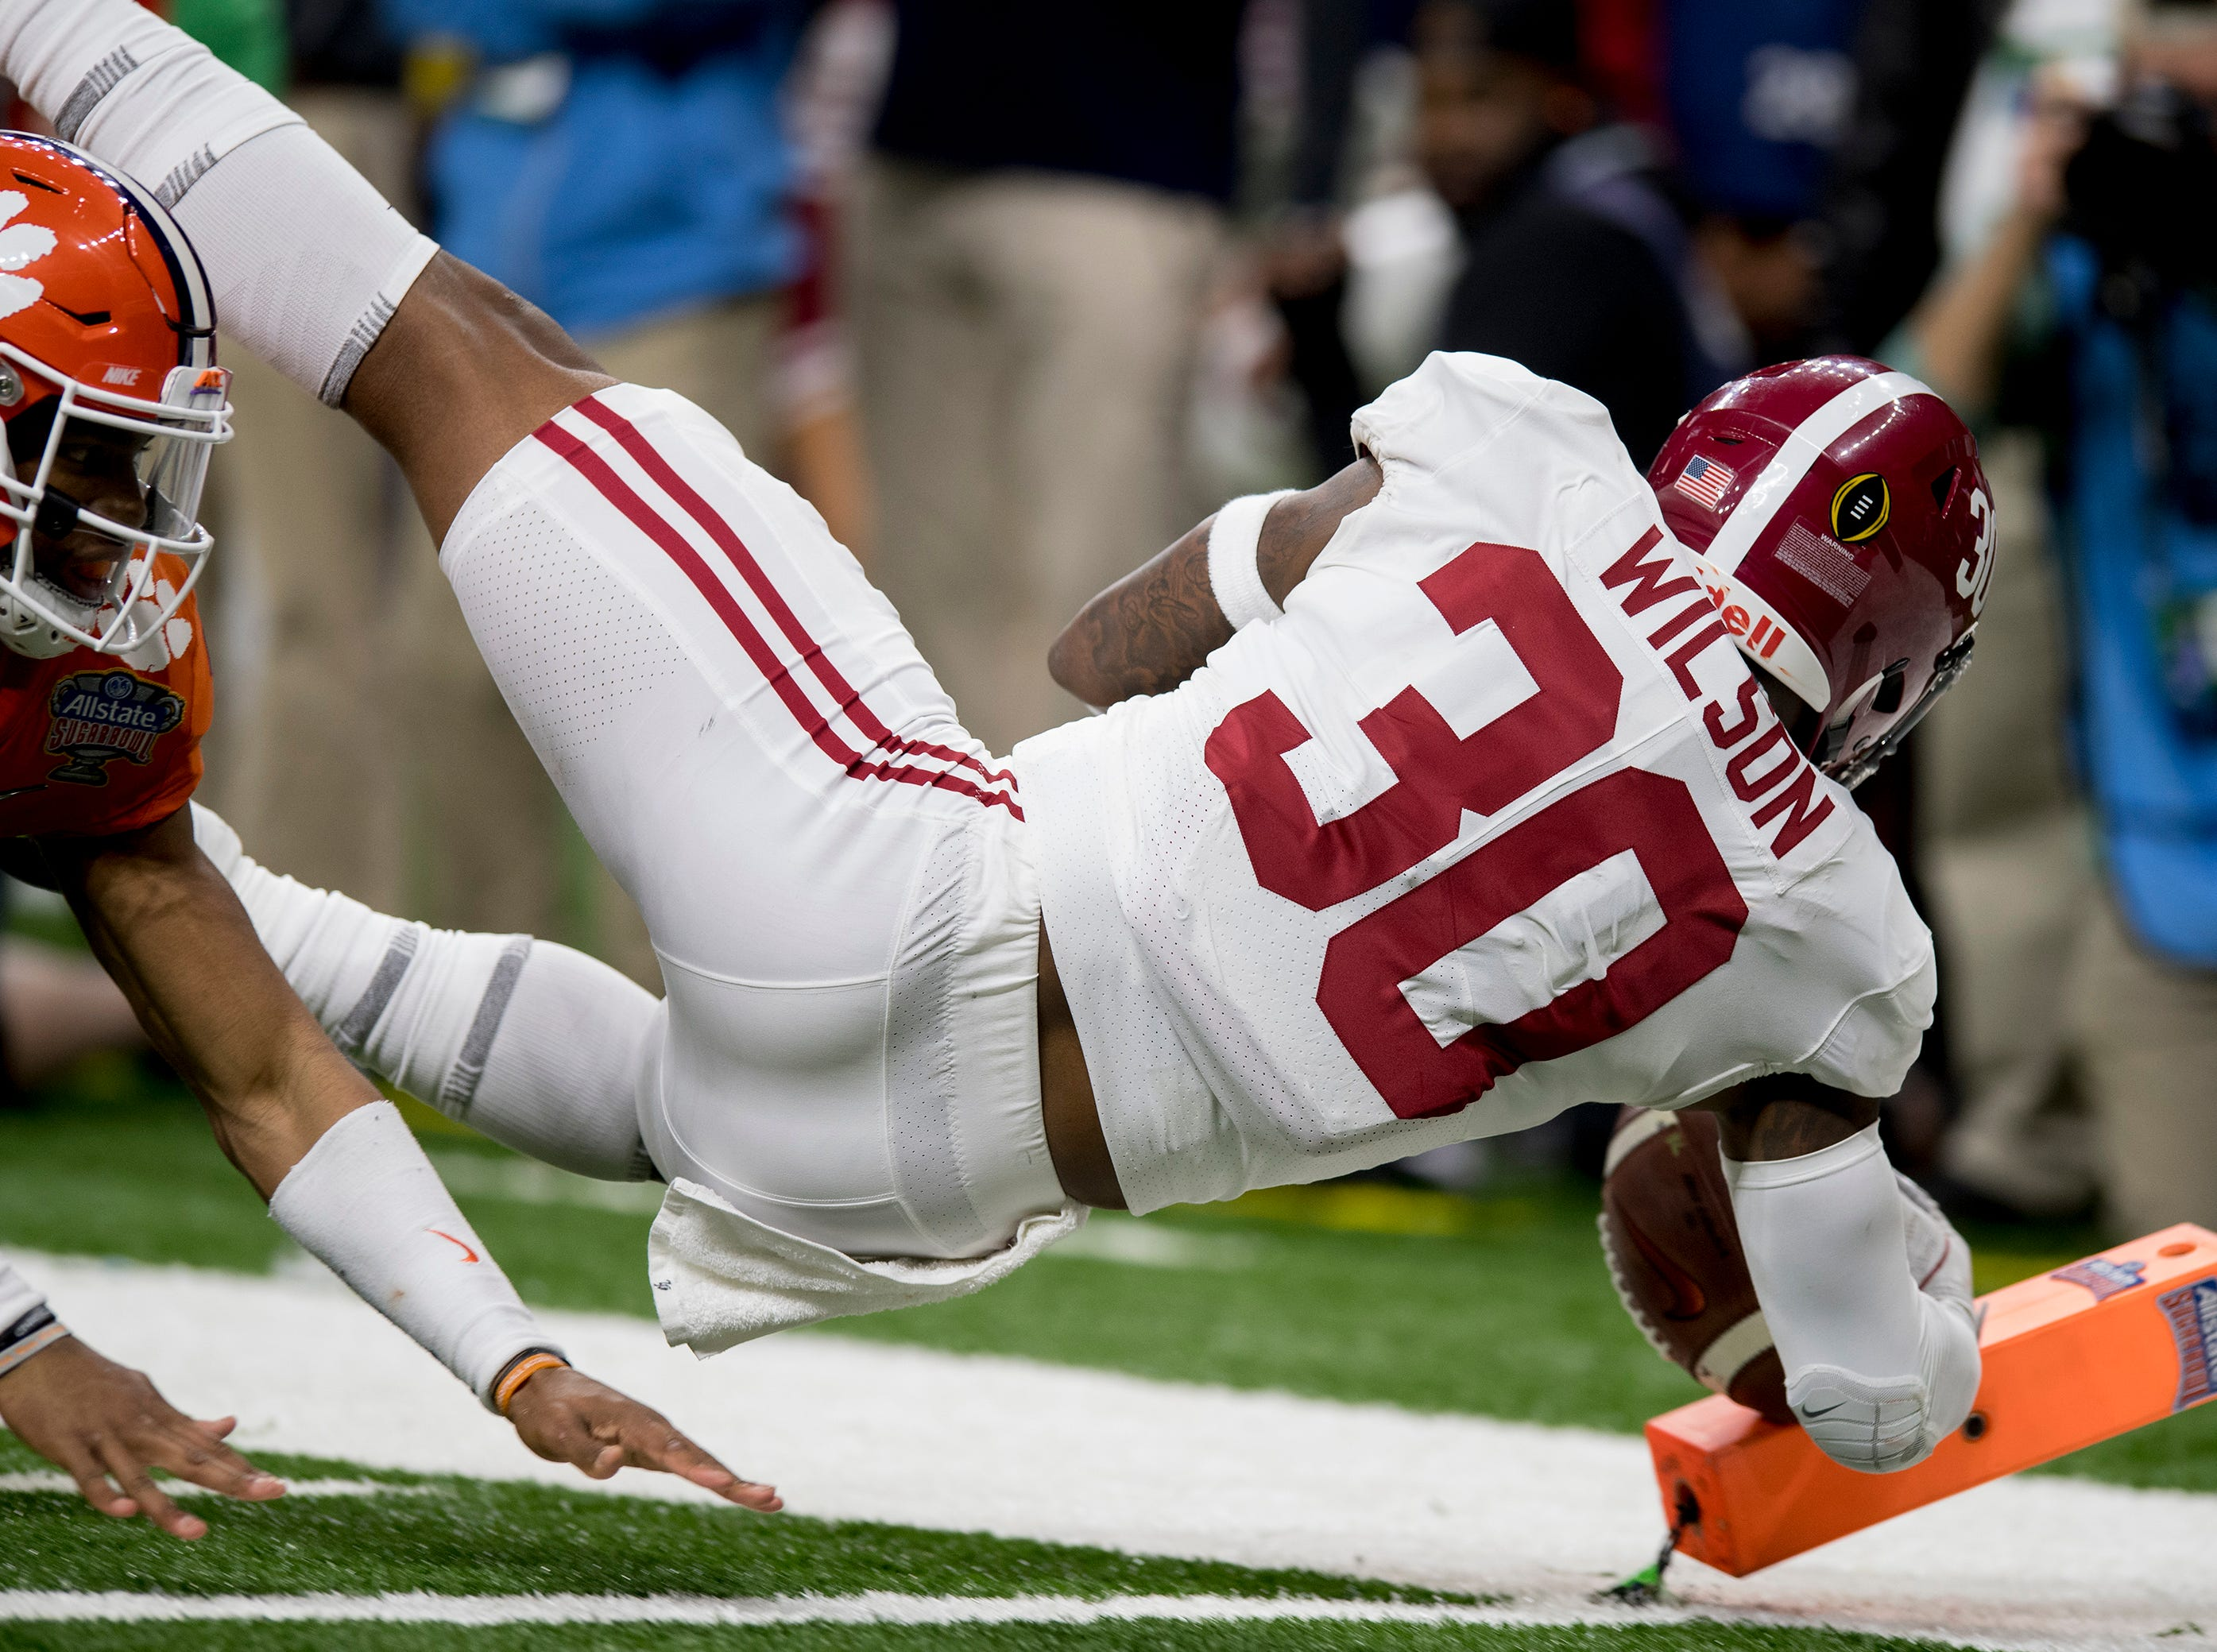 Alabama linebacker Mack Wilson (30) dives in for an touchdown on an interception against Clemson in the Sugar Bowl at the Superdome in New Orleans, La. on Monday January 1, 2018.